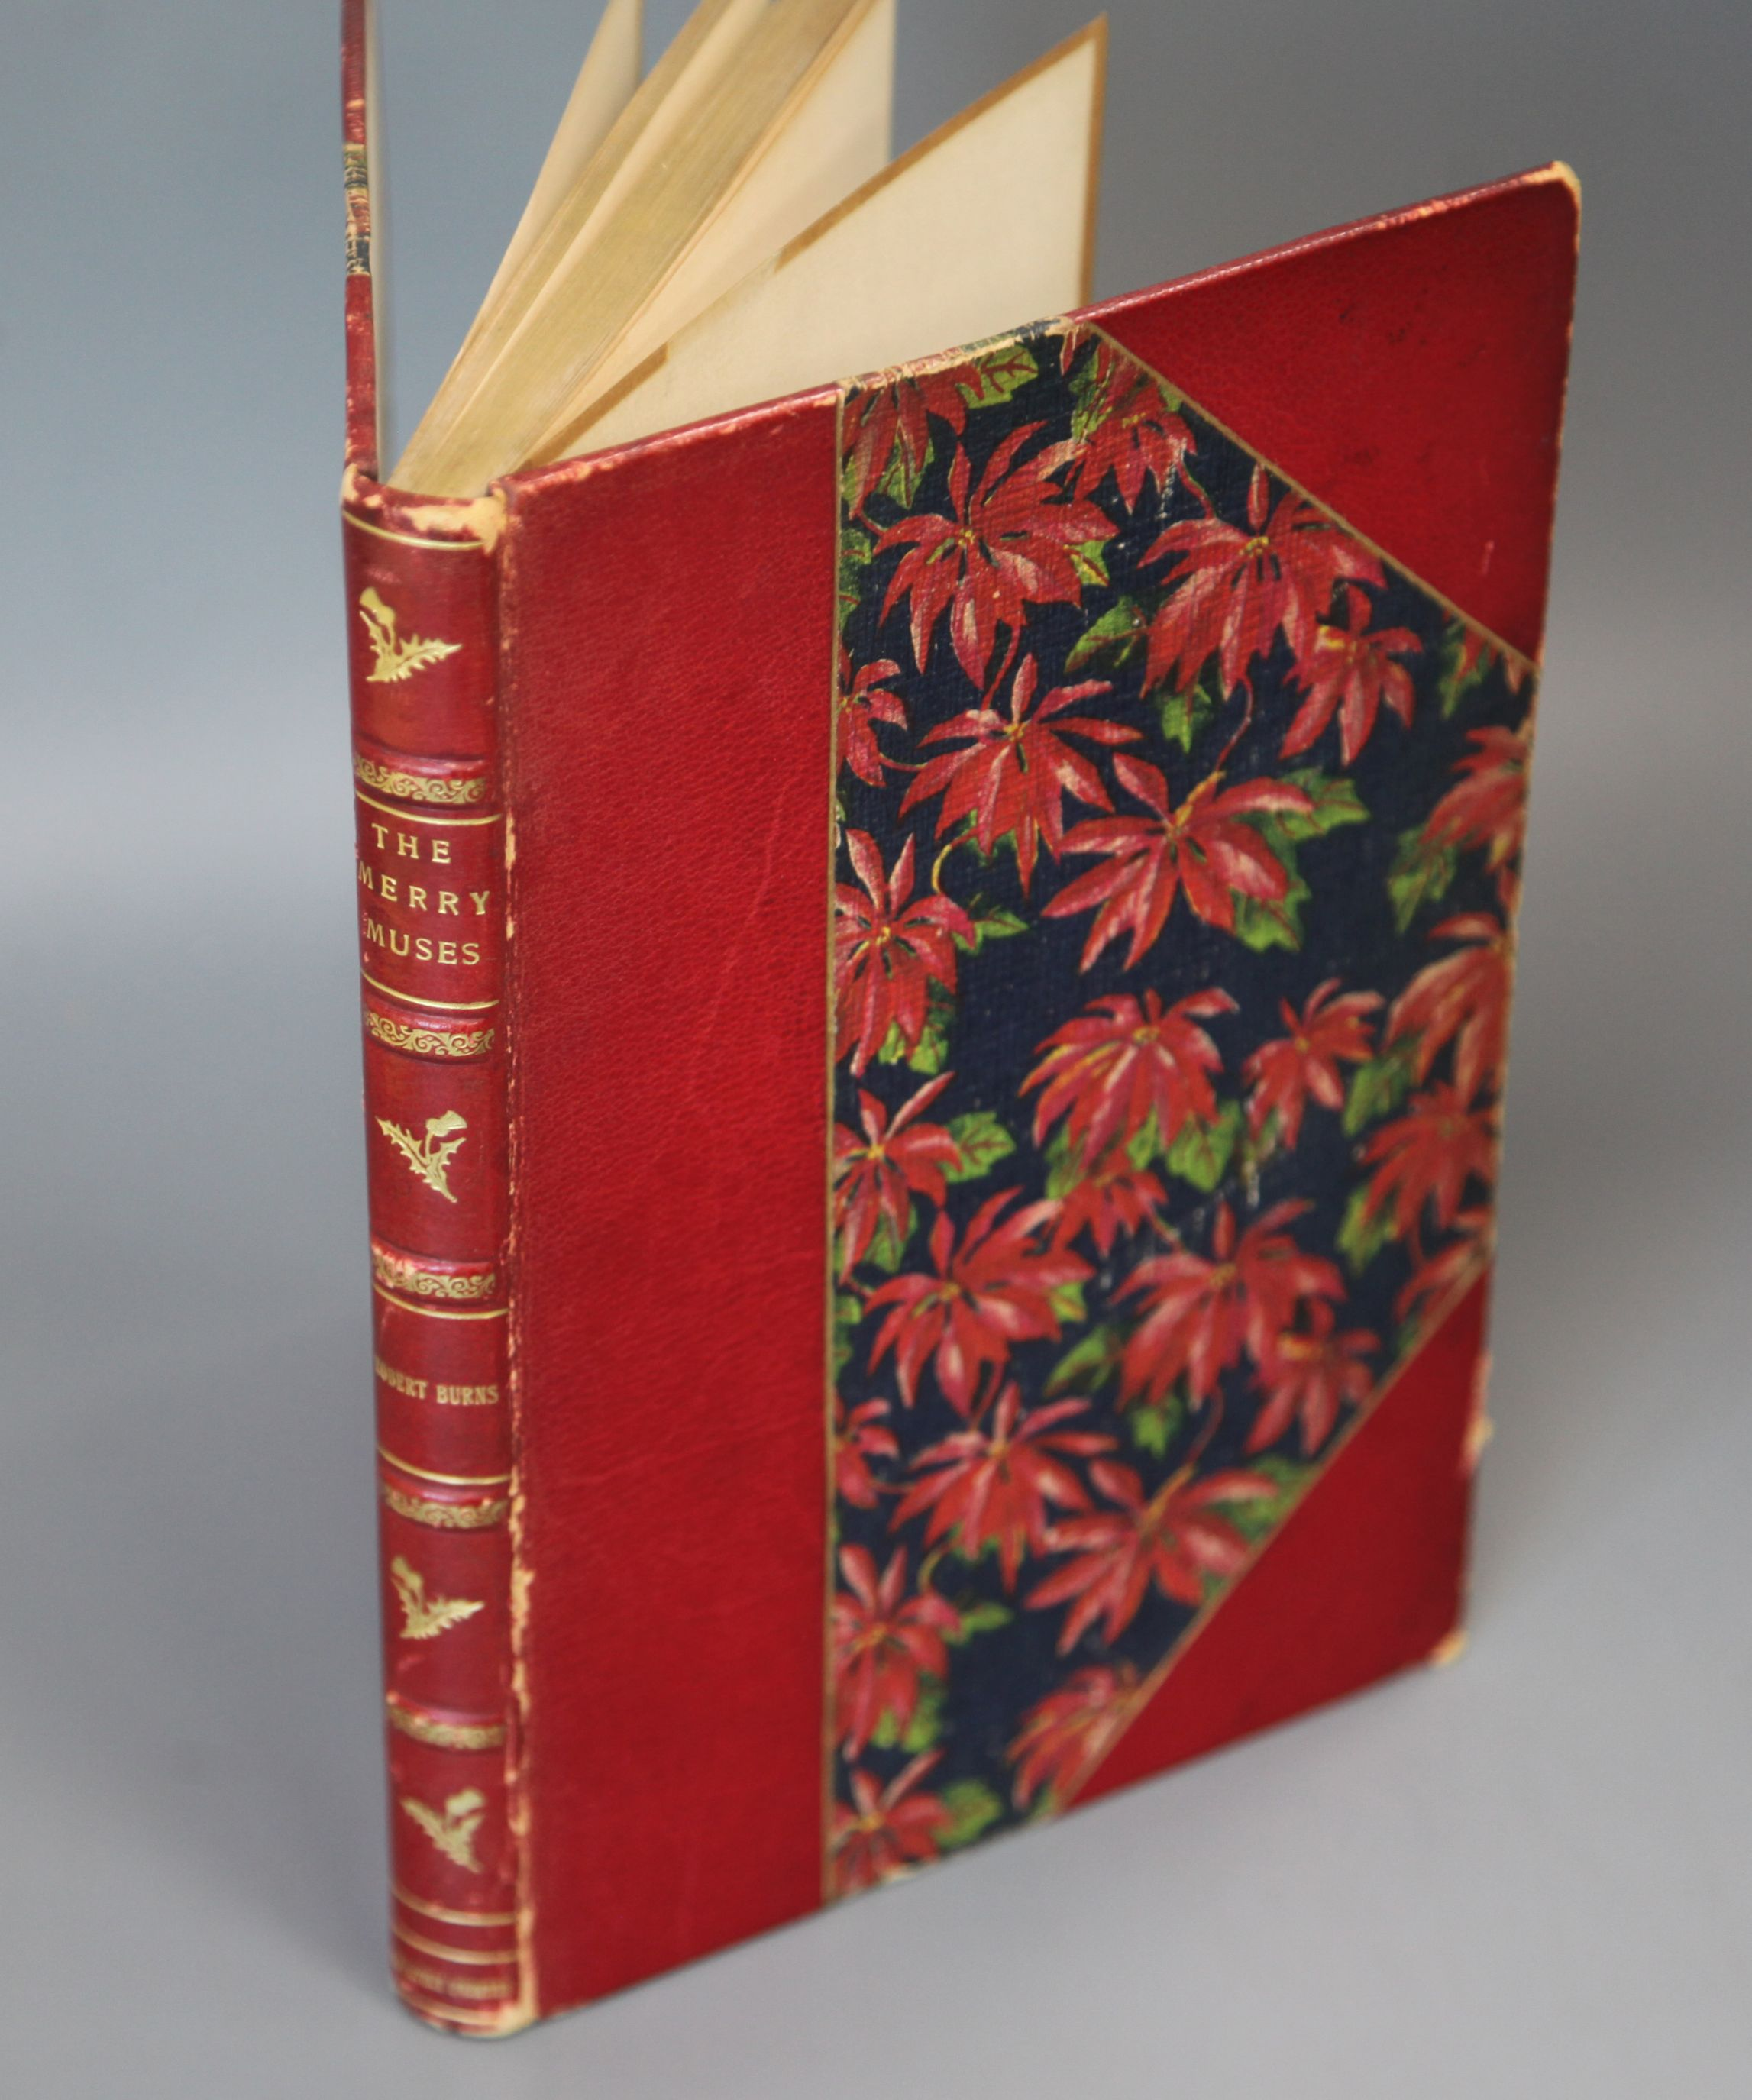 Lot 13 - Burns, Robert - The Merry Muses, a choice collection of favourite songs gathered from many